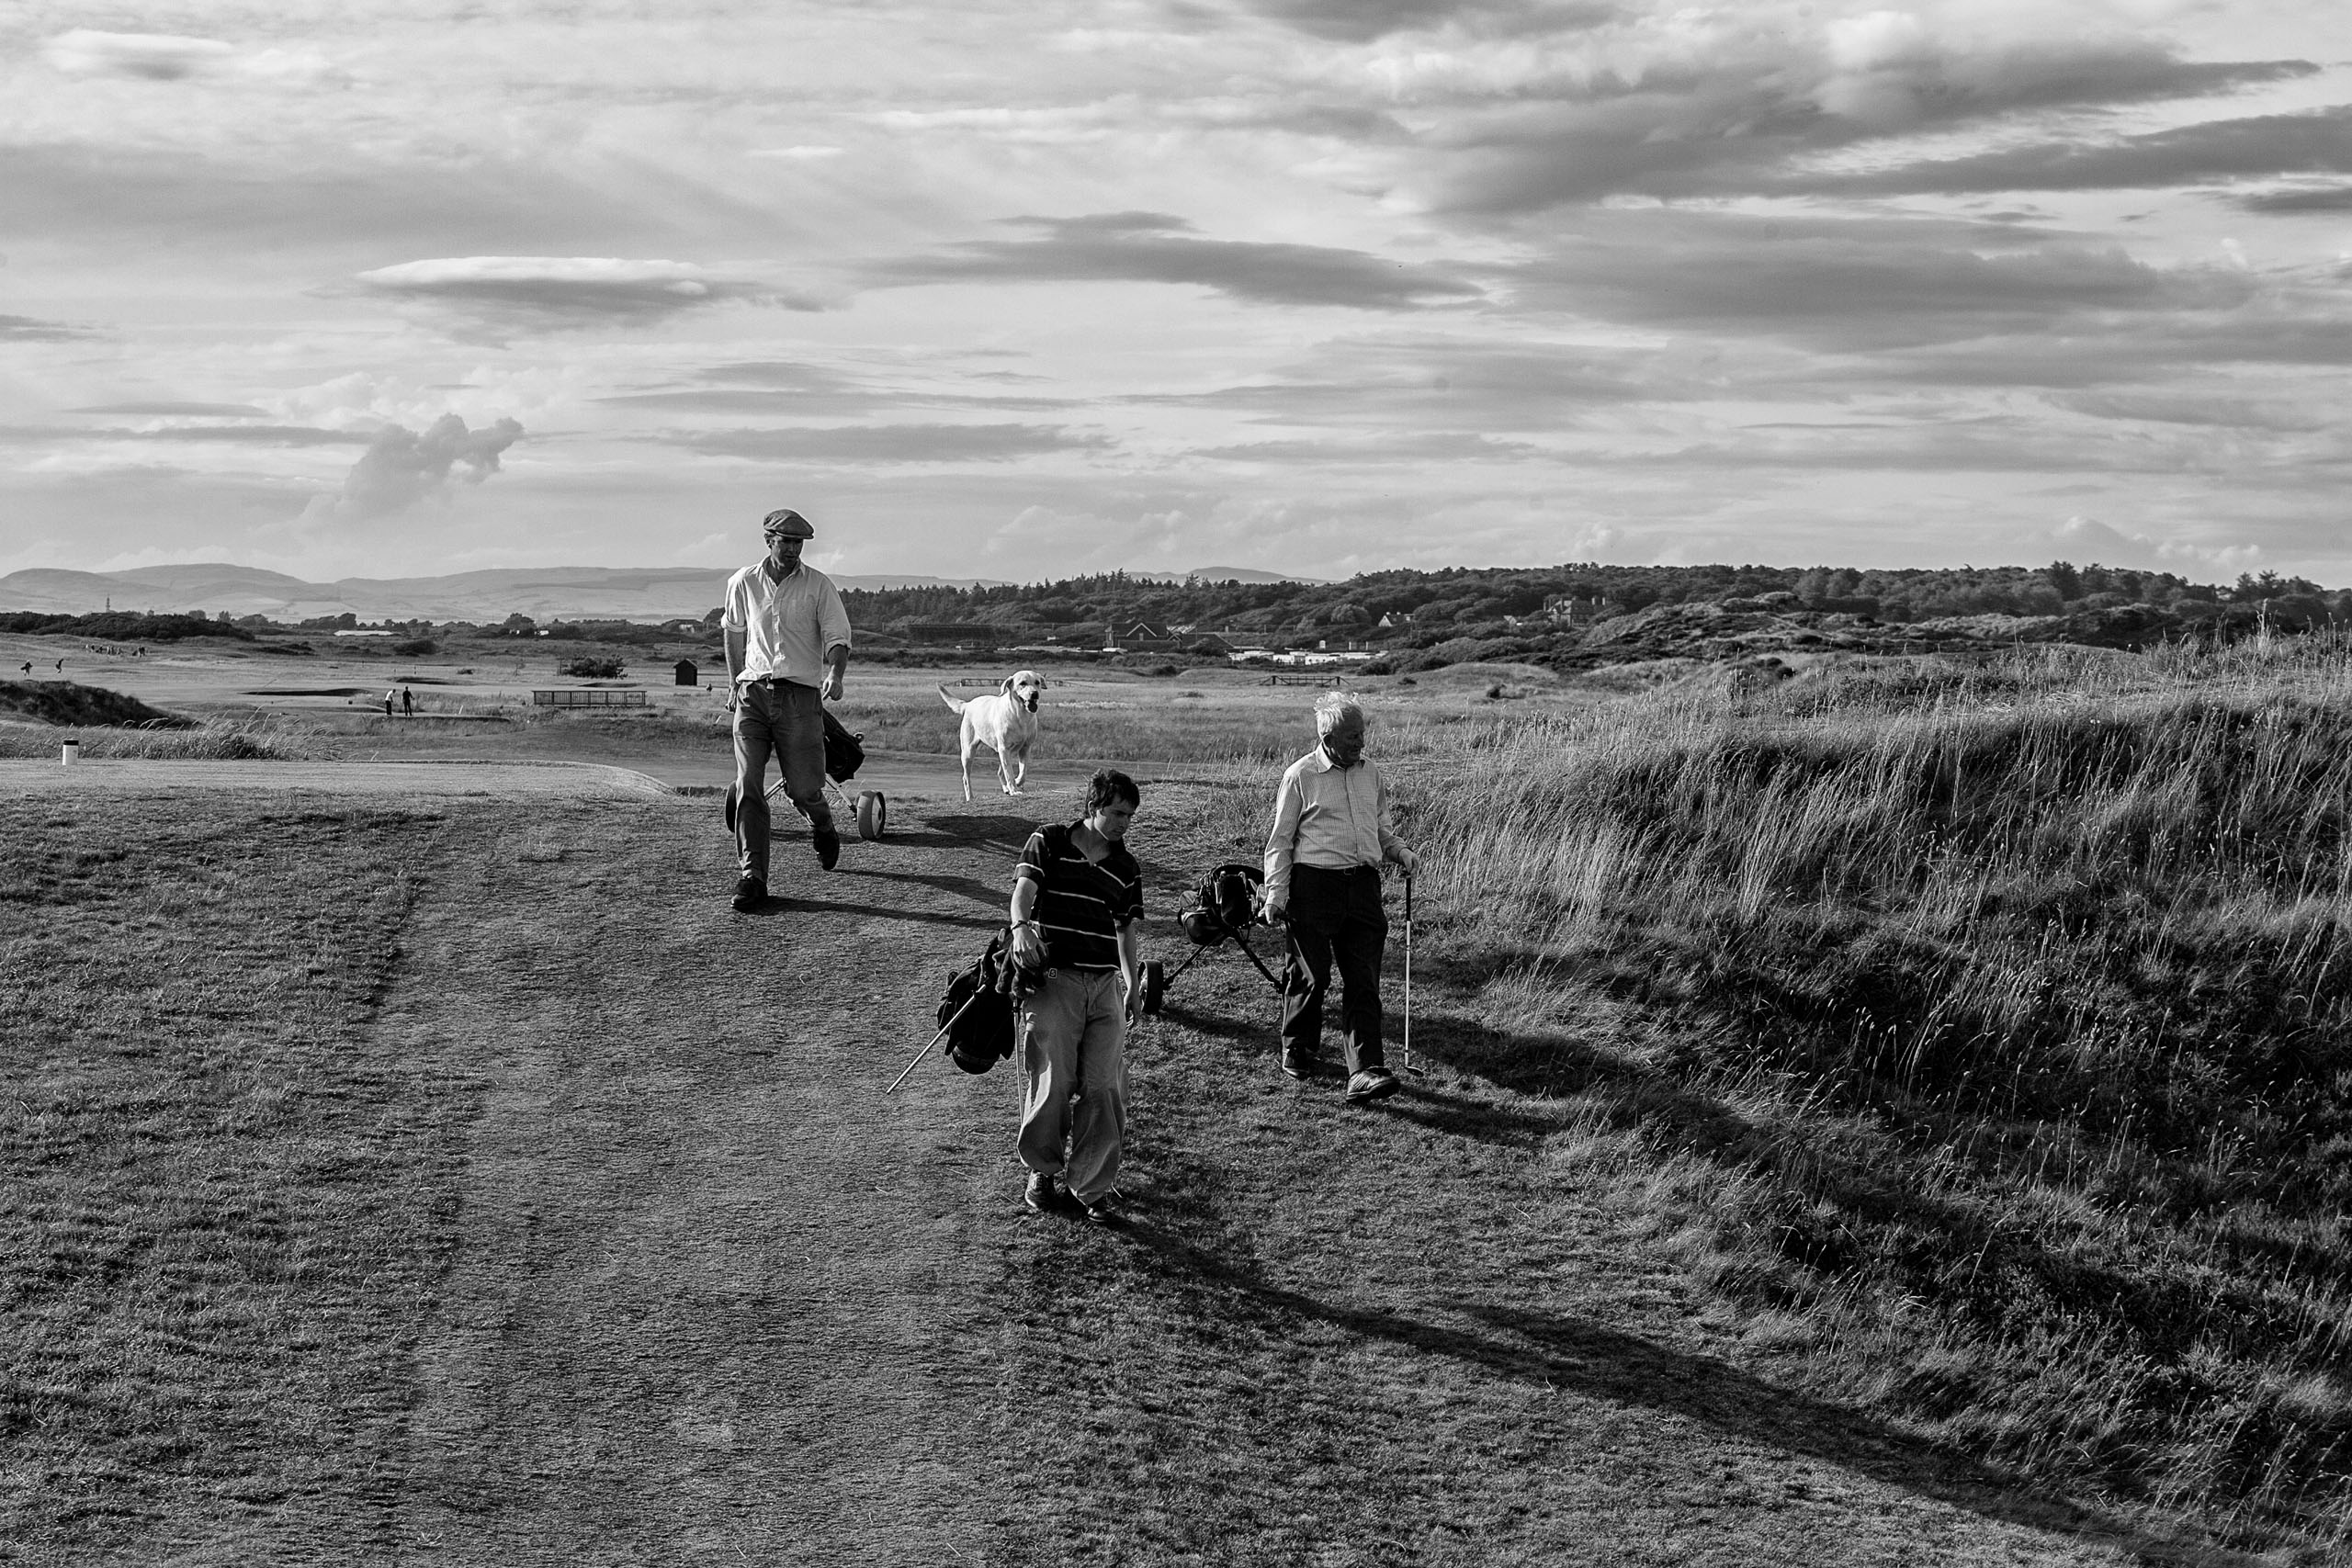 A family playing golf with their dog in tow at Prestwick Golf Club. I felt complete happiness watching them. Maybe this is what golf is all about. Photo by Taku Miyamoto